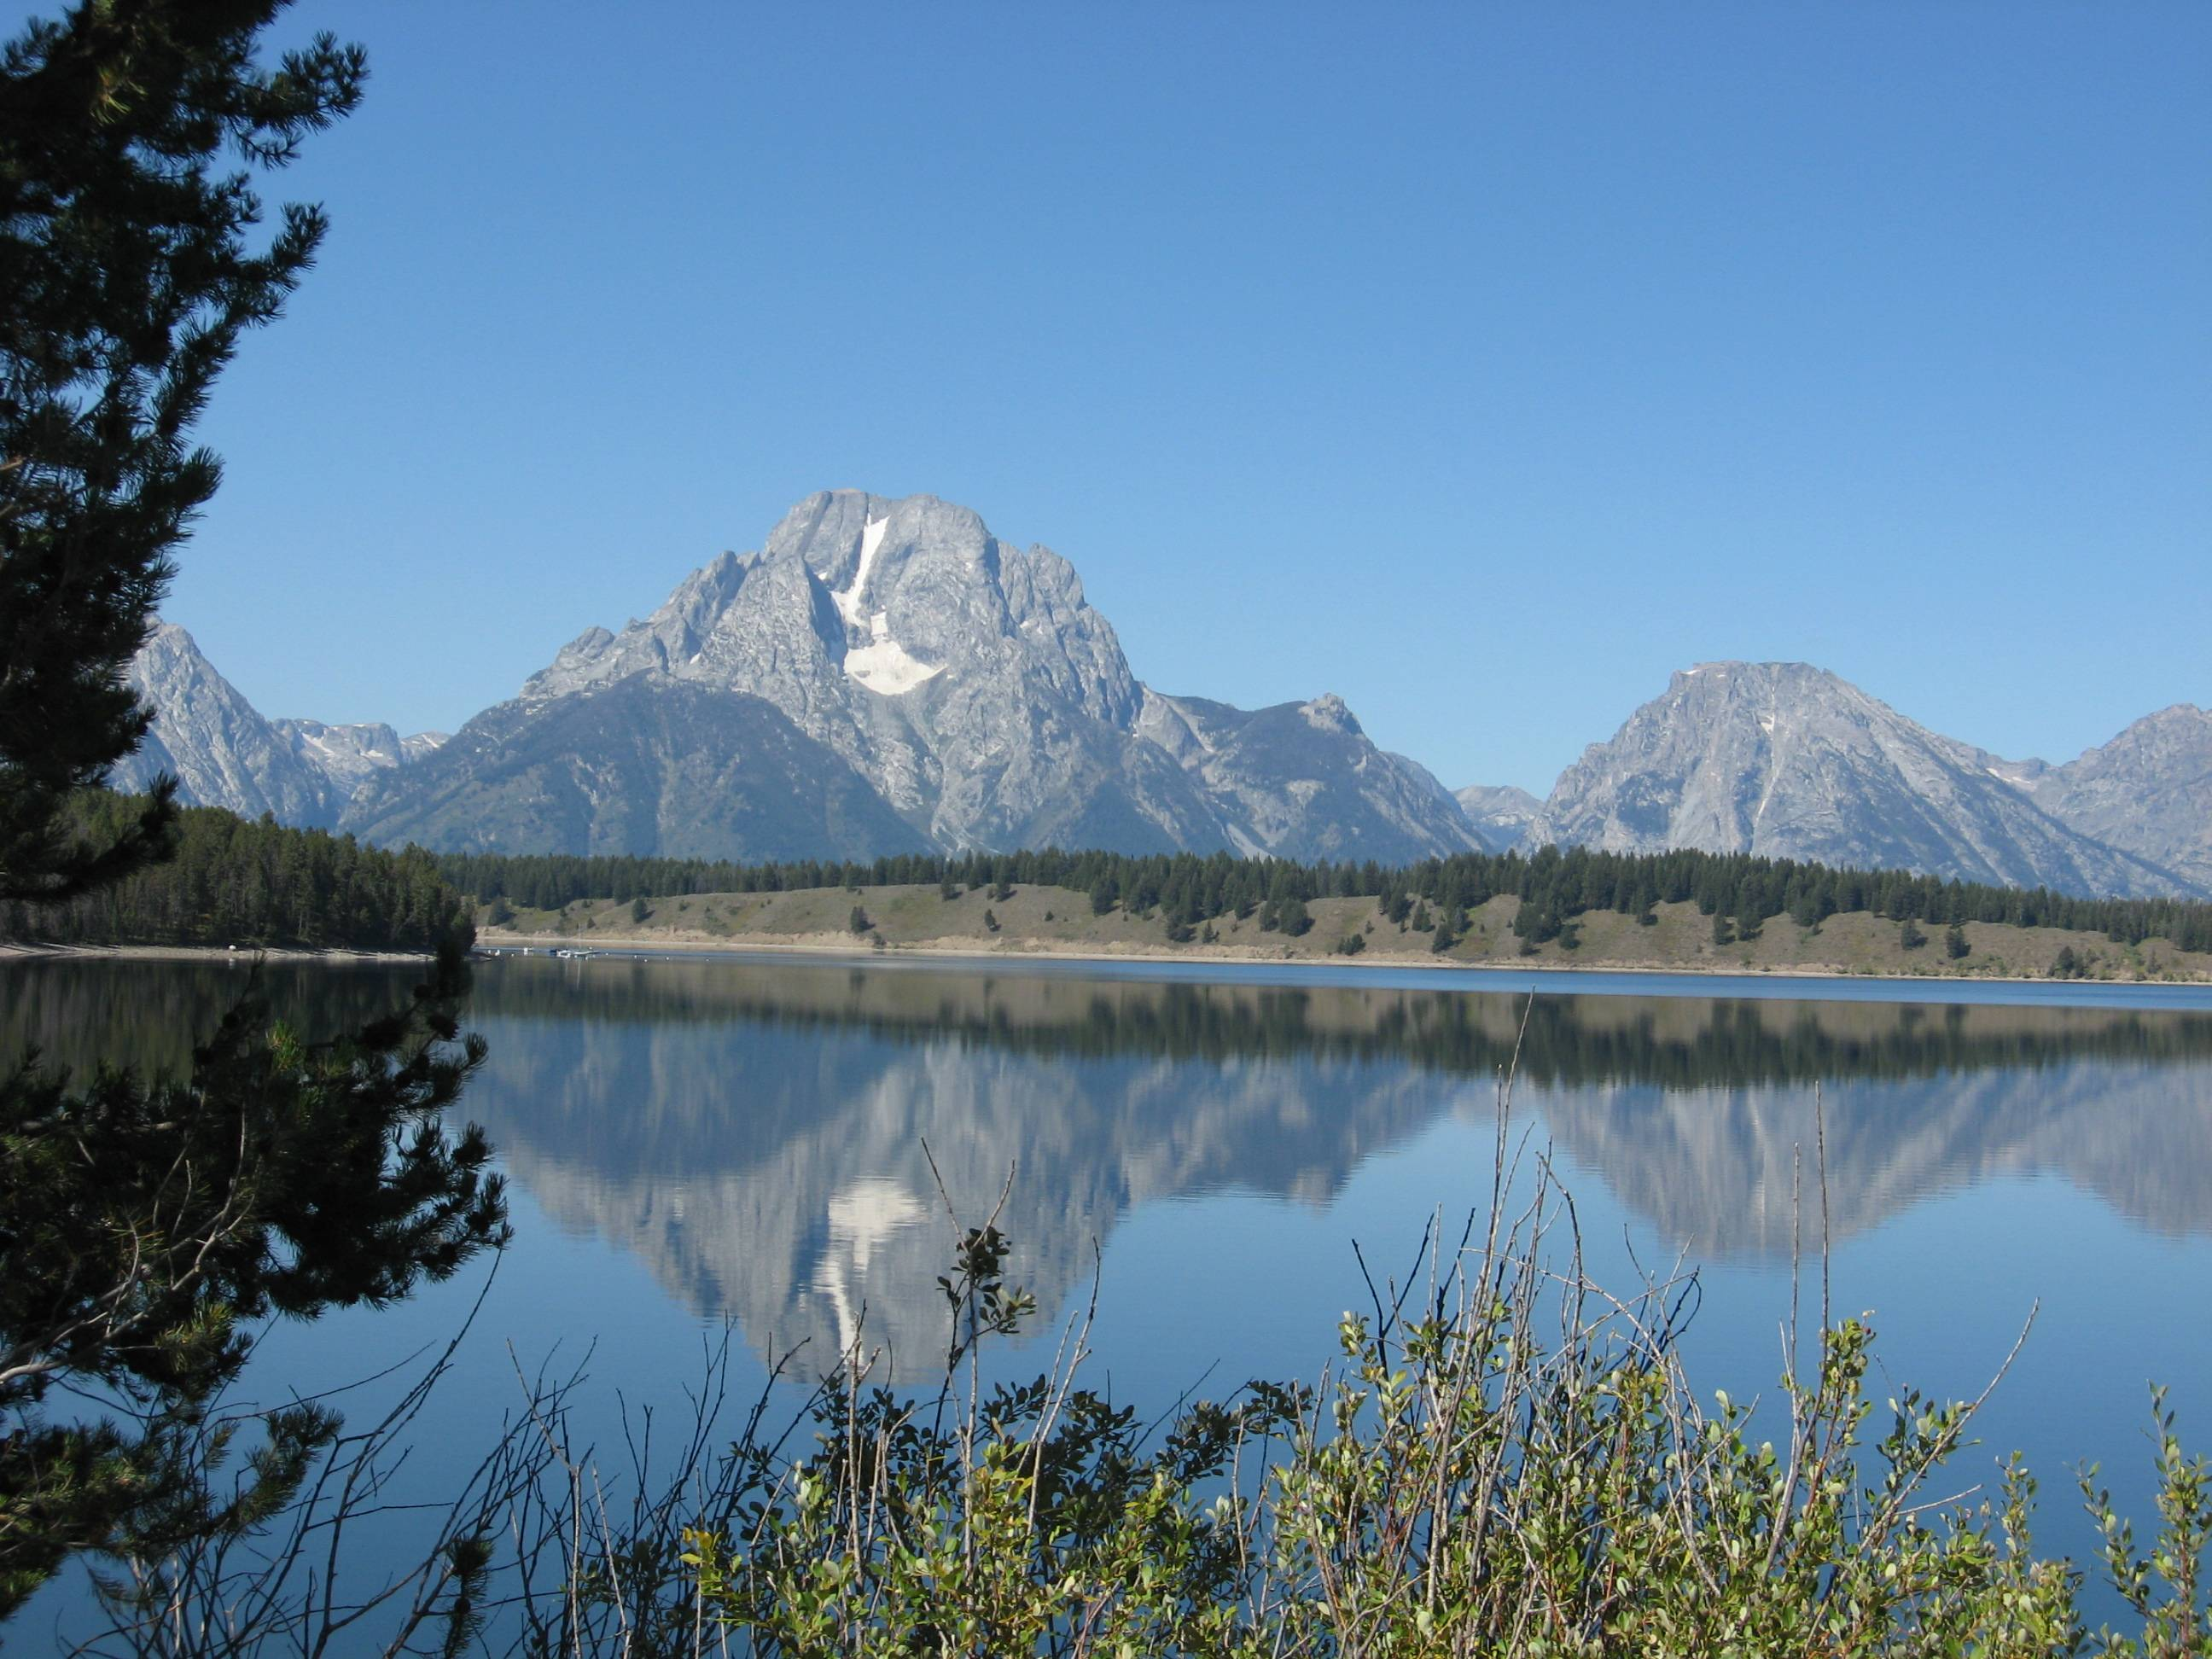 On a beautiful, sunny, clear September visit to the Tetons, I was able to get this majestic reflected view.